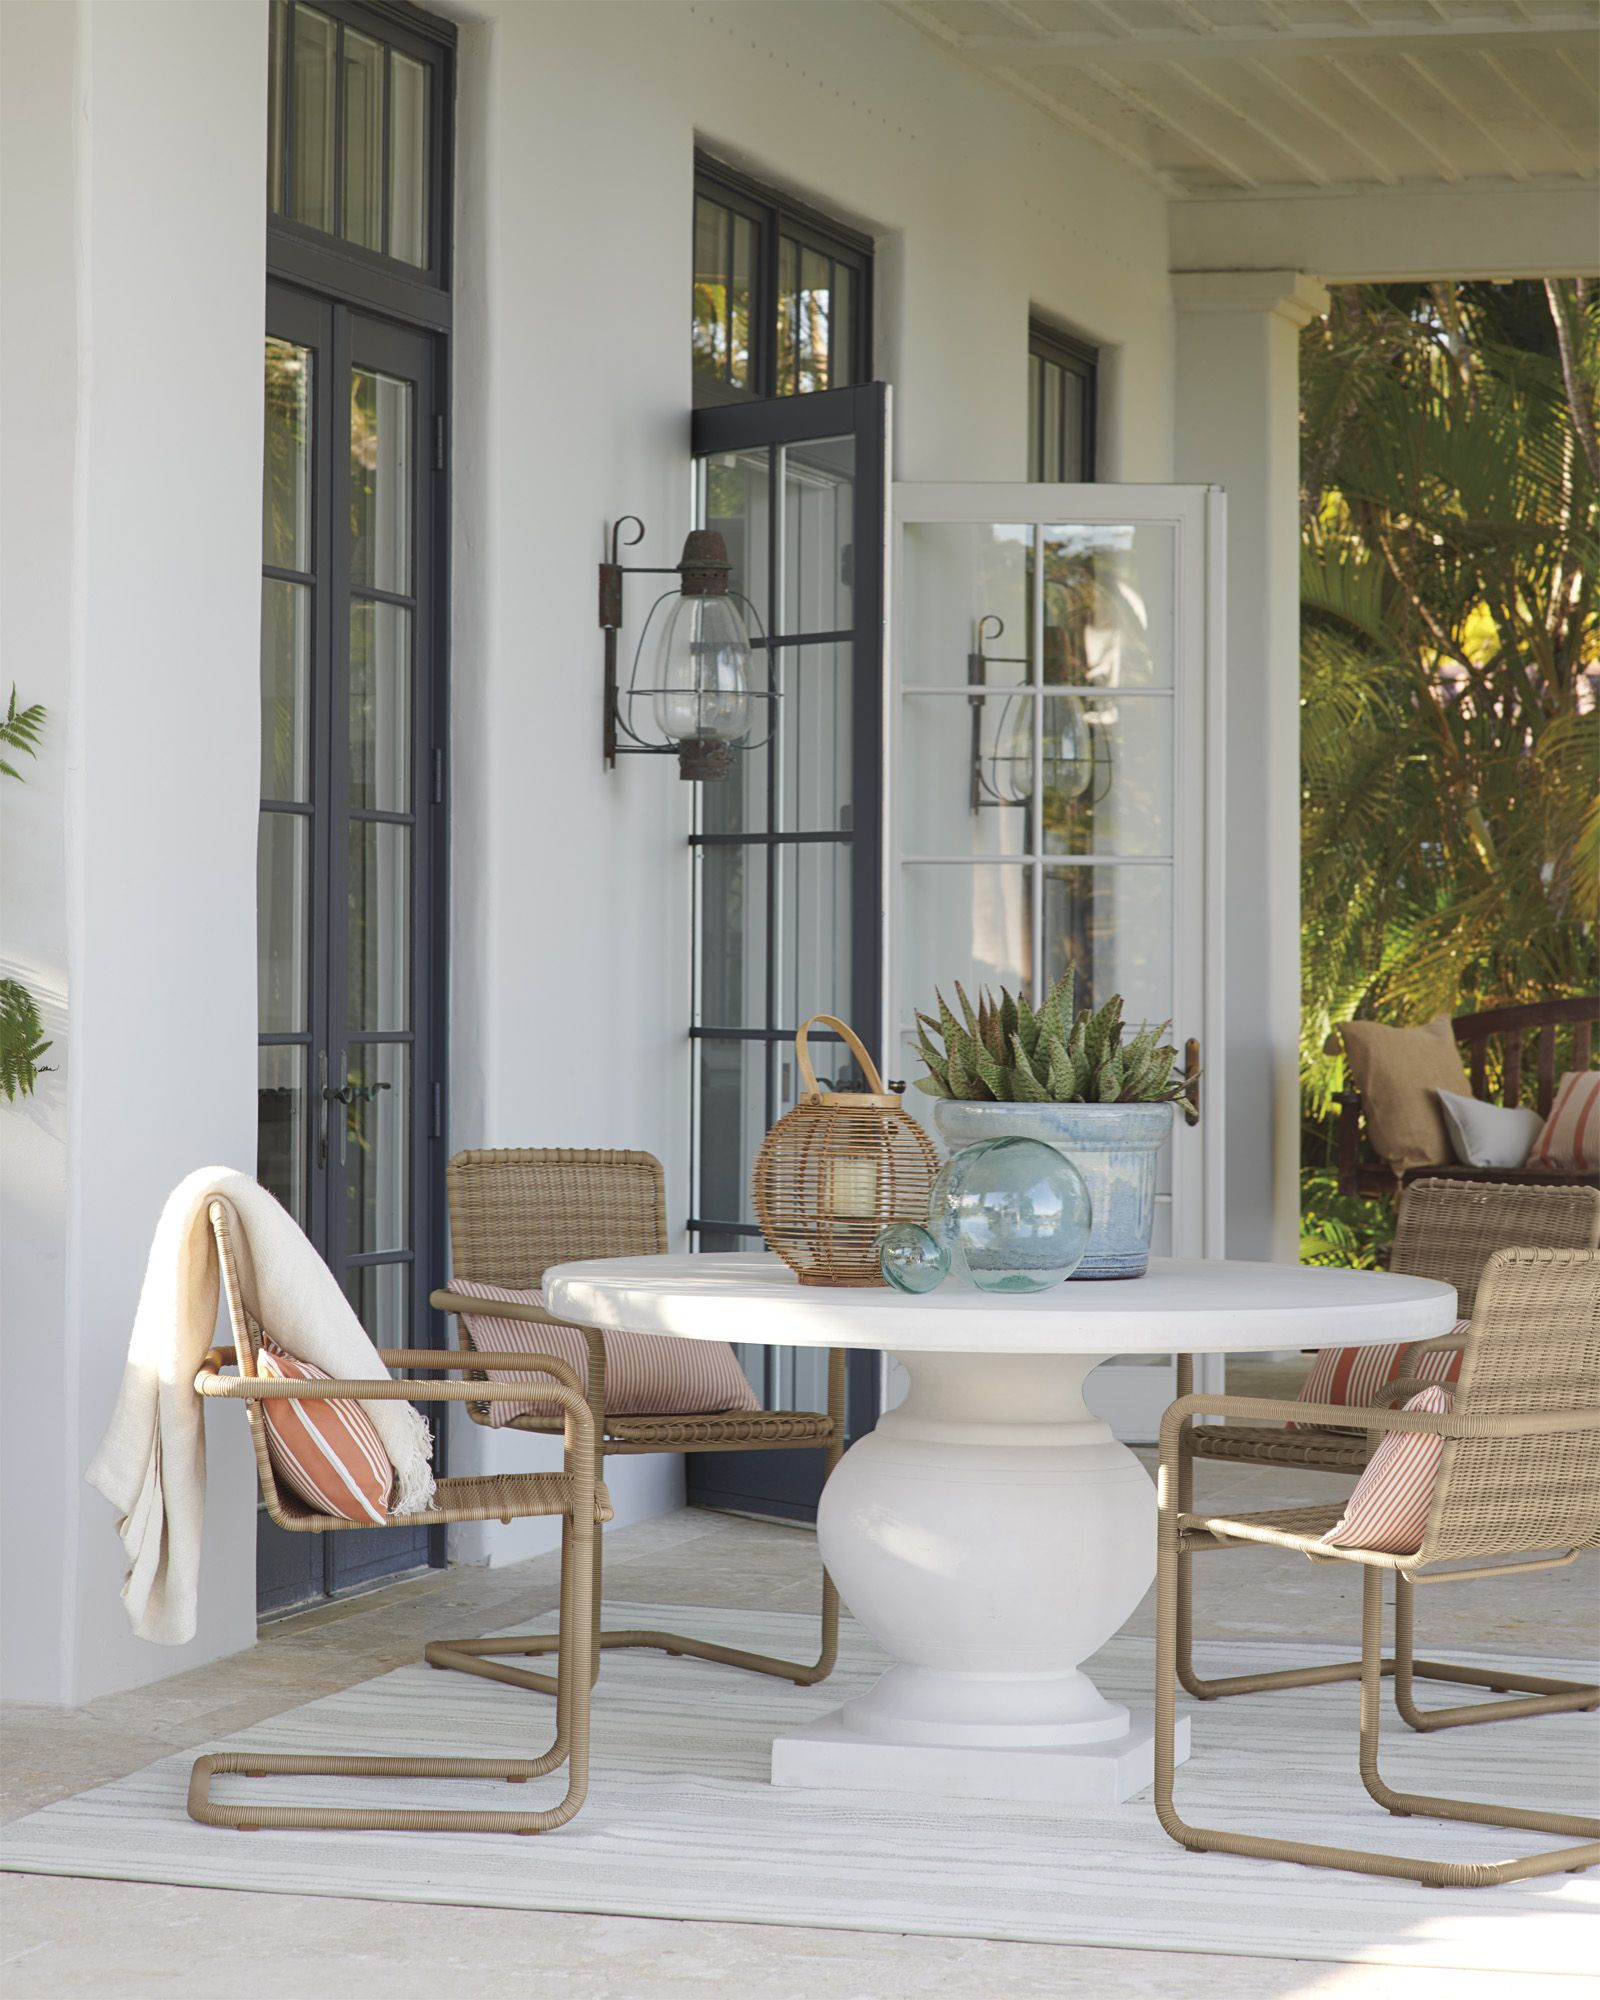 Wonderful Outdoor Dining Area Design And Decorating Ideas: St. Martin Perennials®️ Outdoor Rug